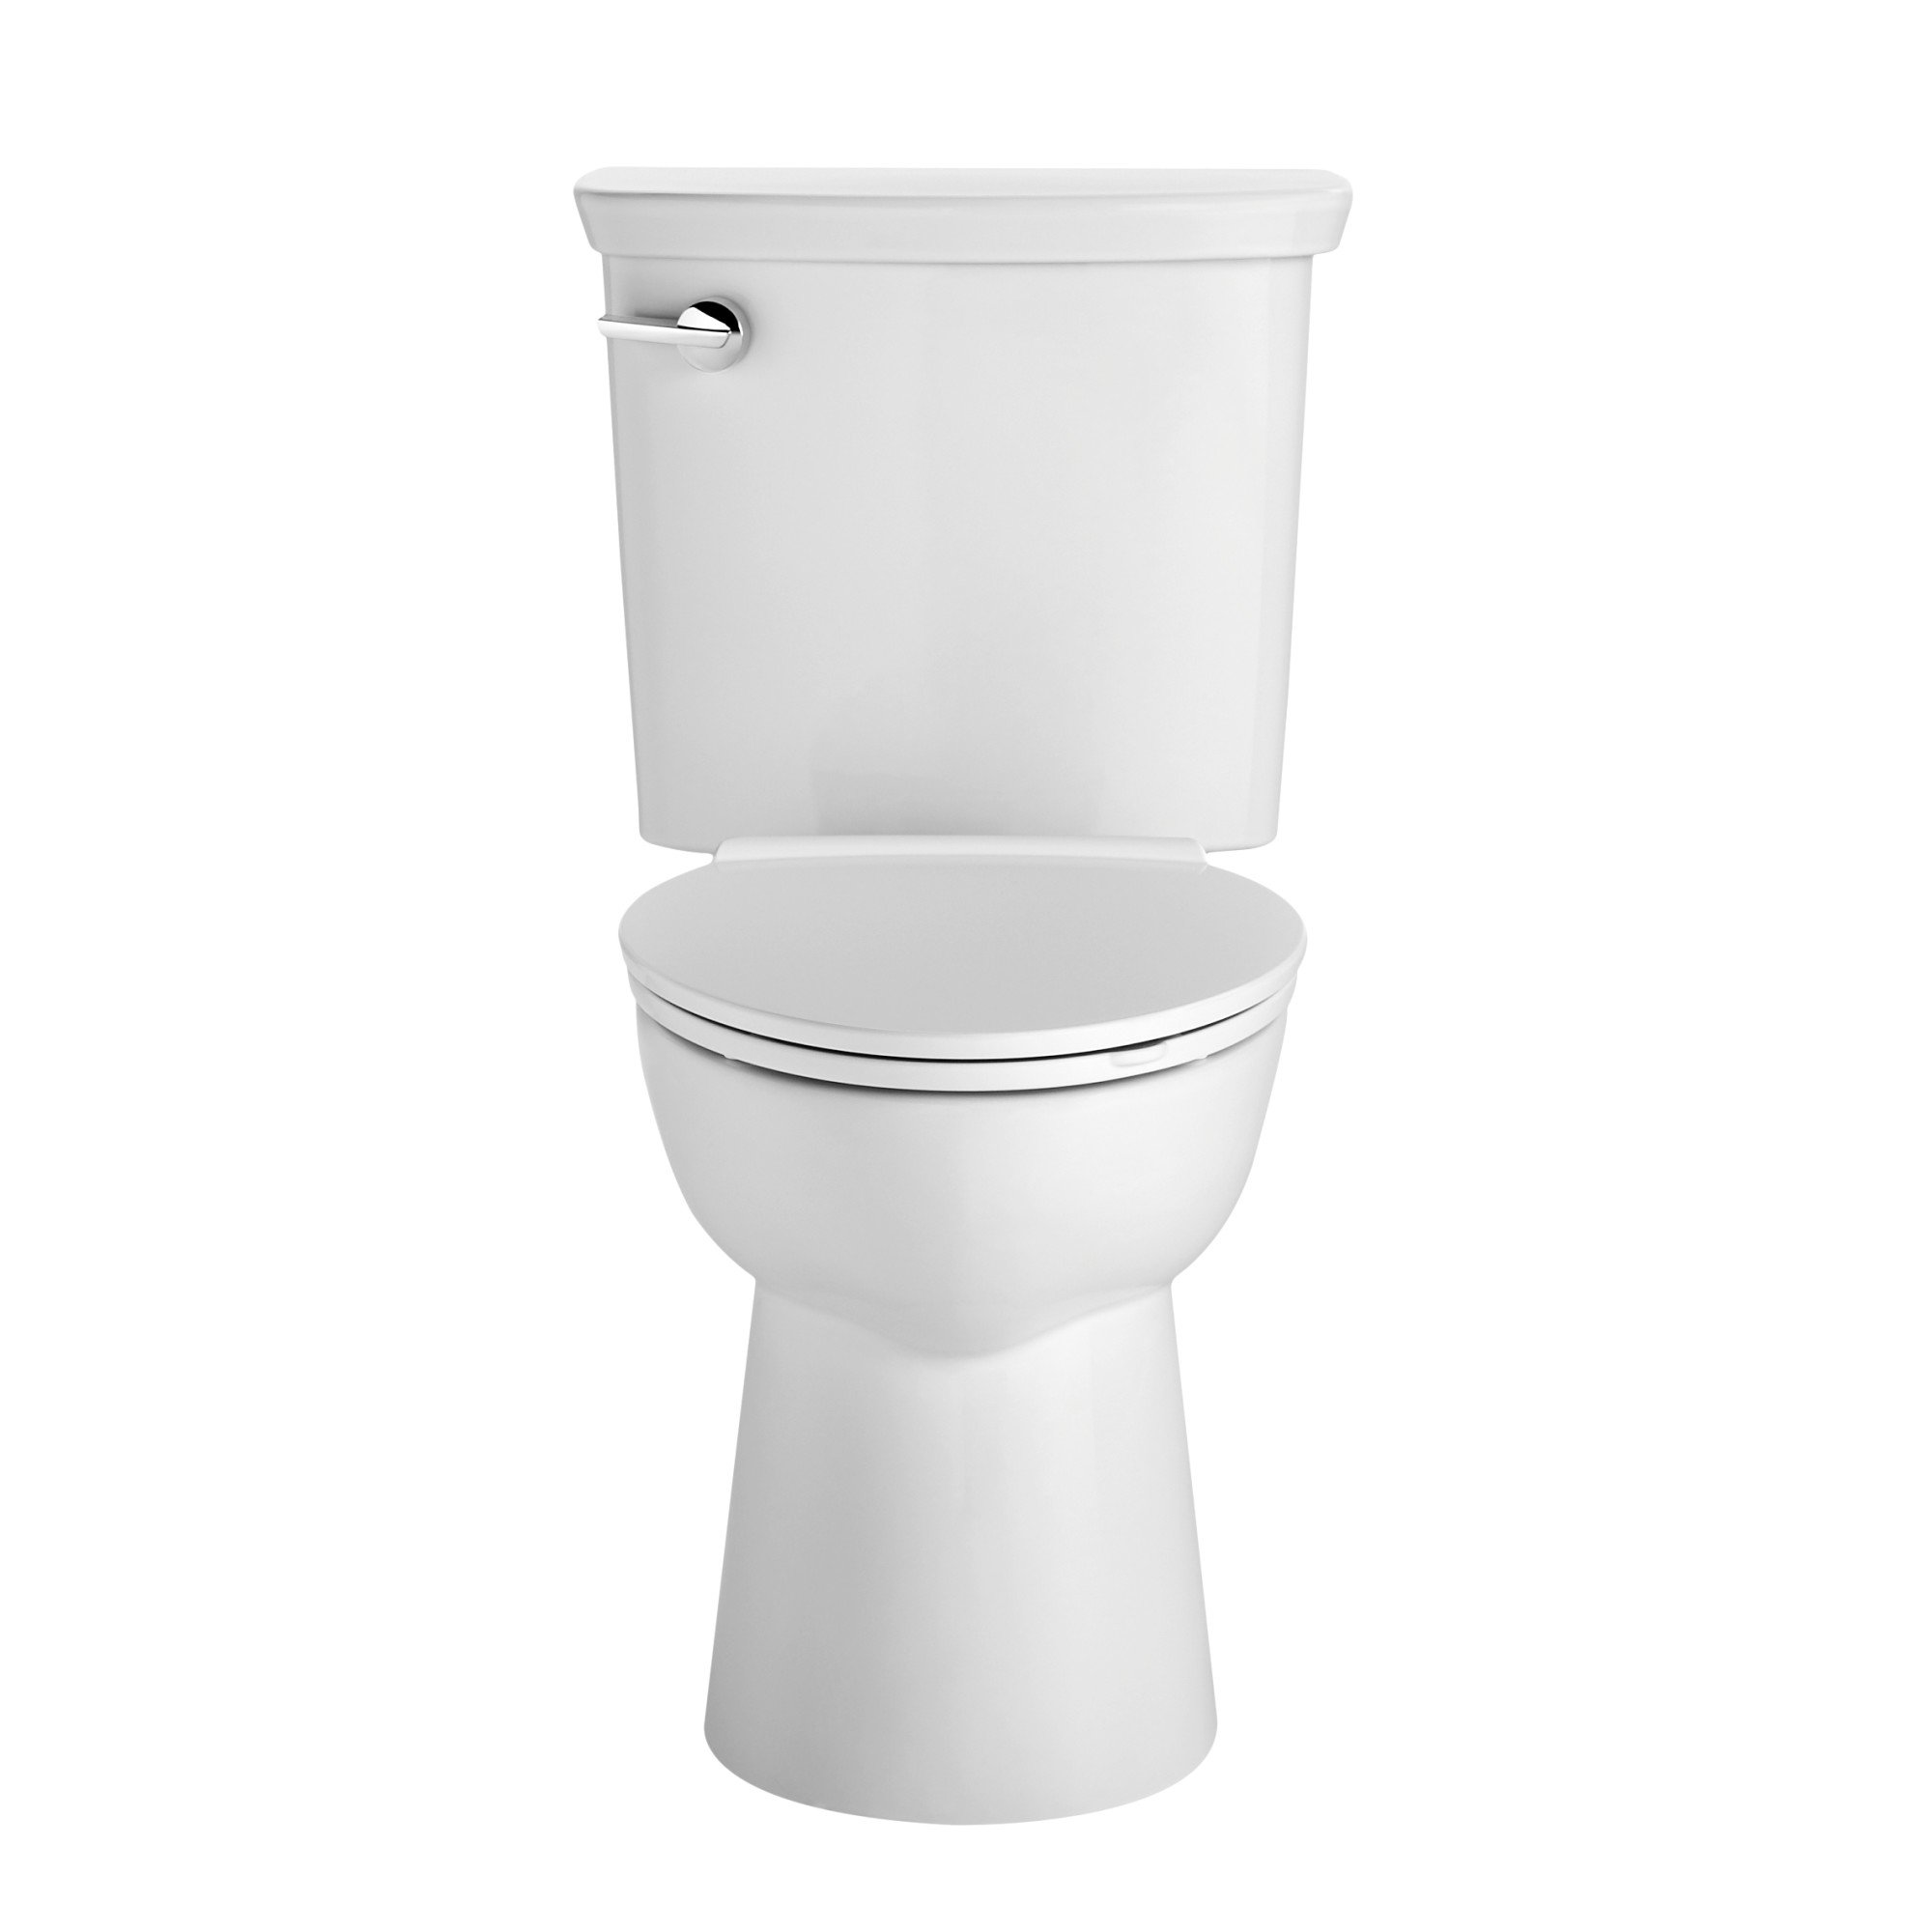 American Standard 238AA104.020 VorMax High Efficiency Right Height Elongated Toilet with Left Hand Trip Lever, White